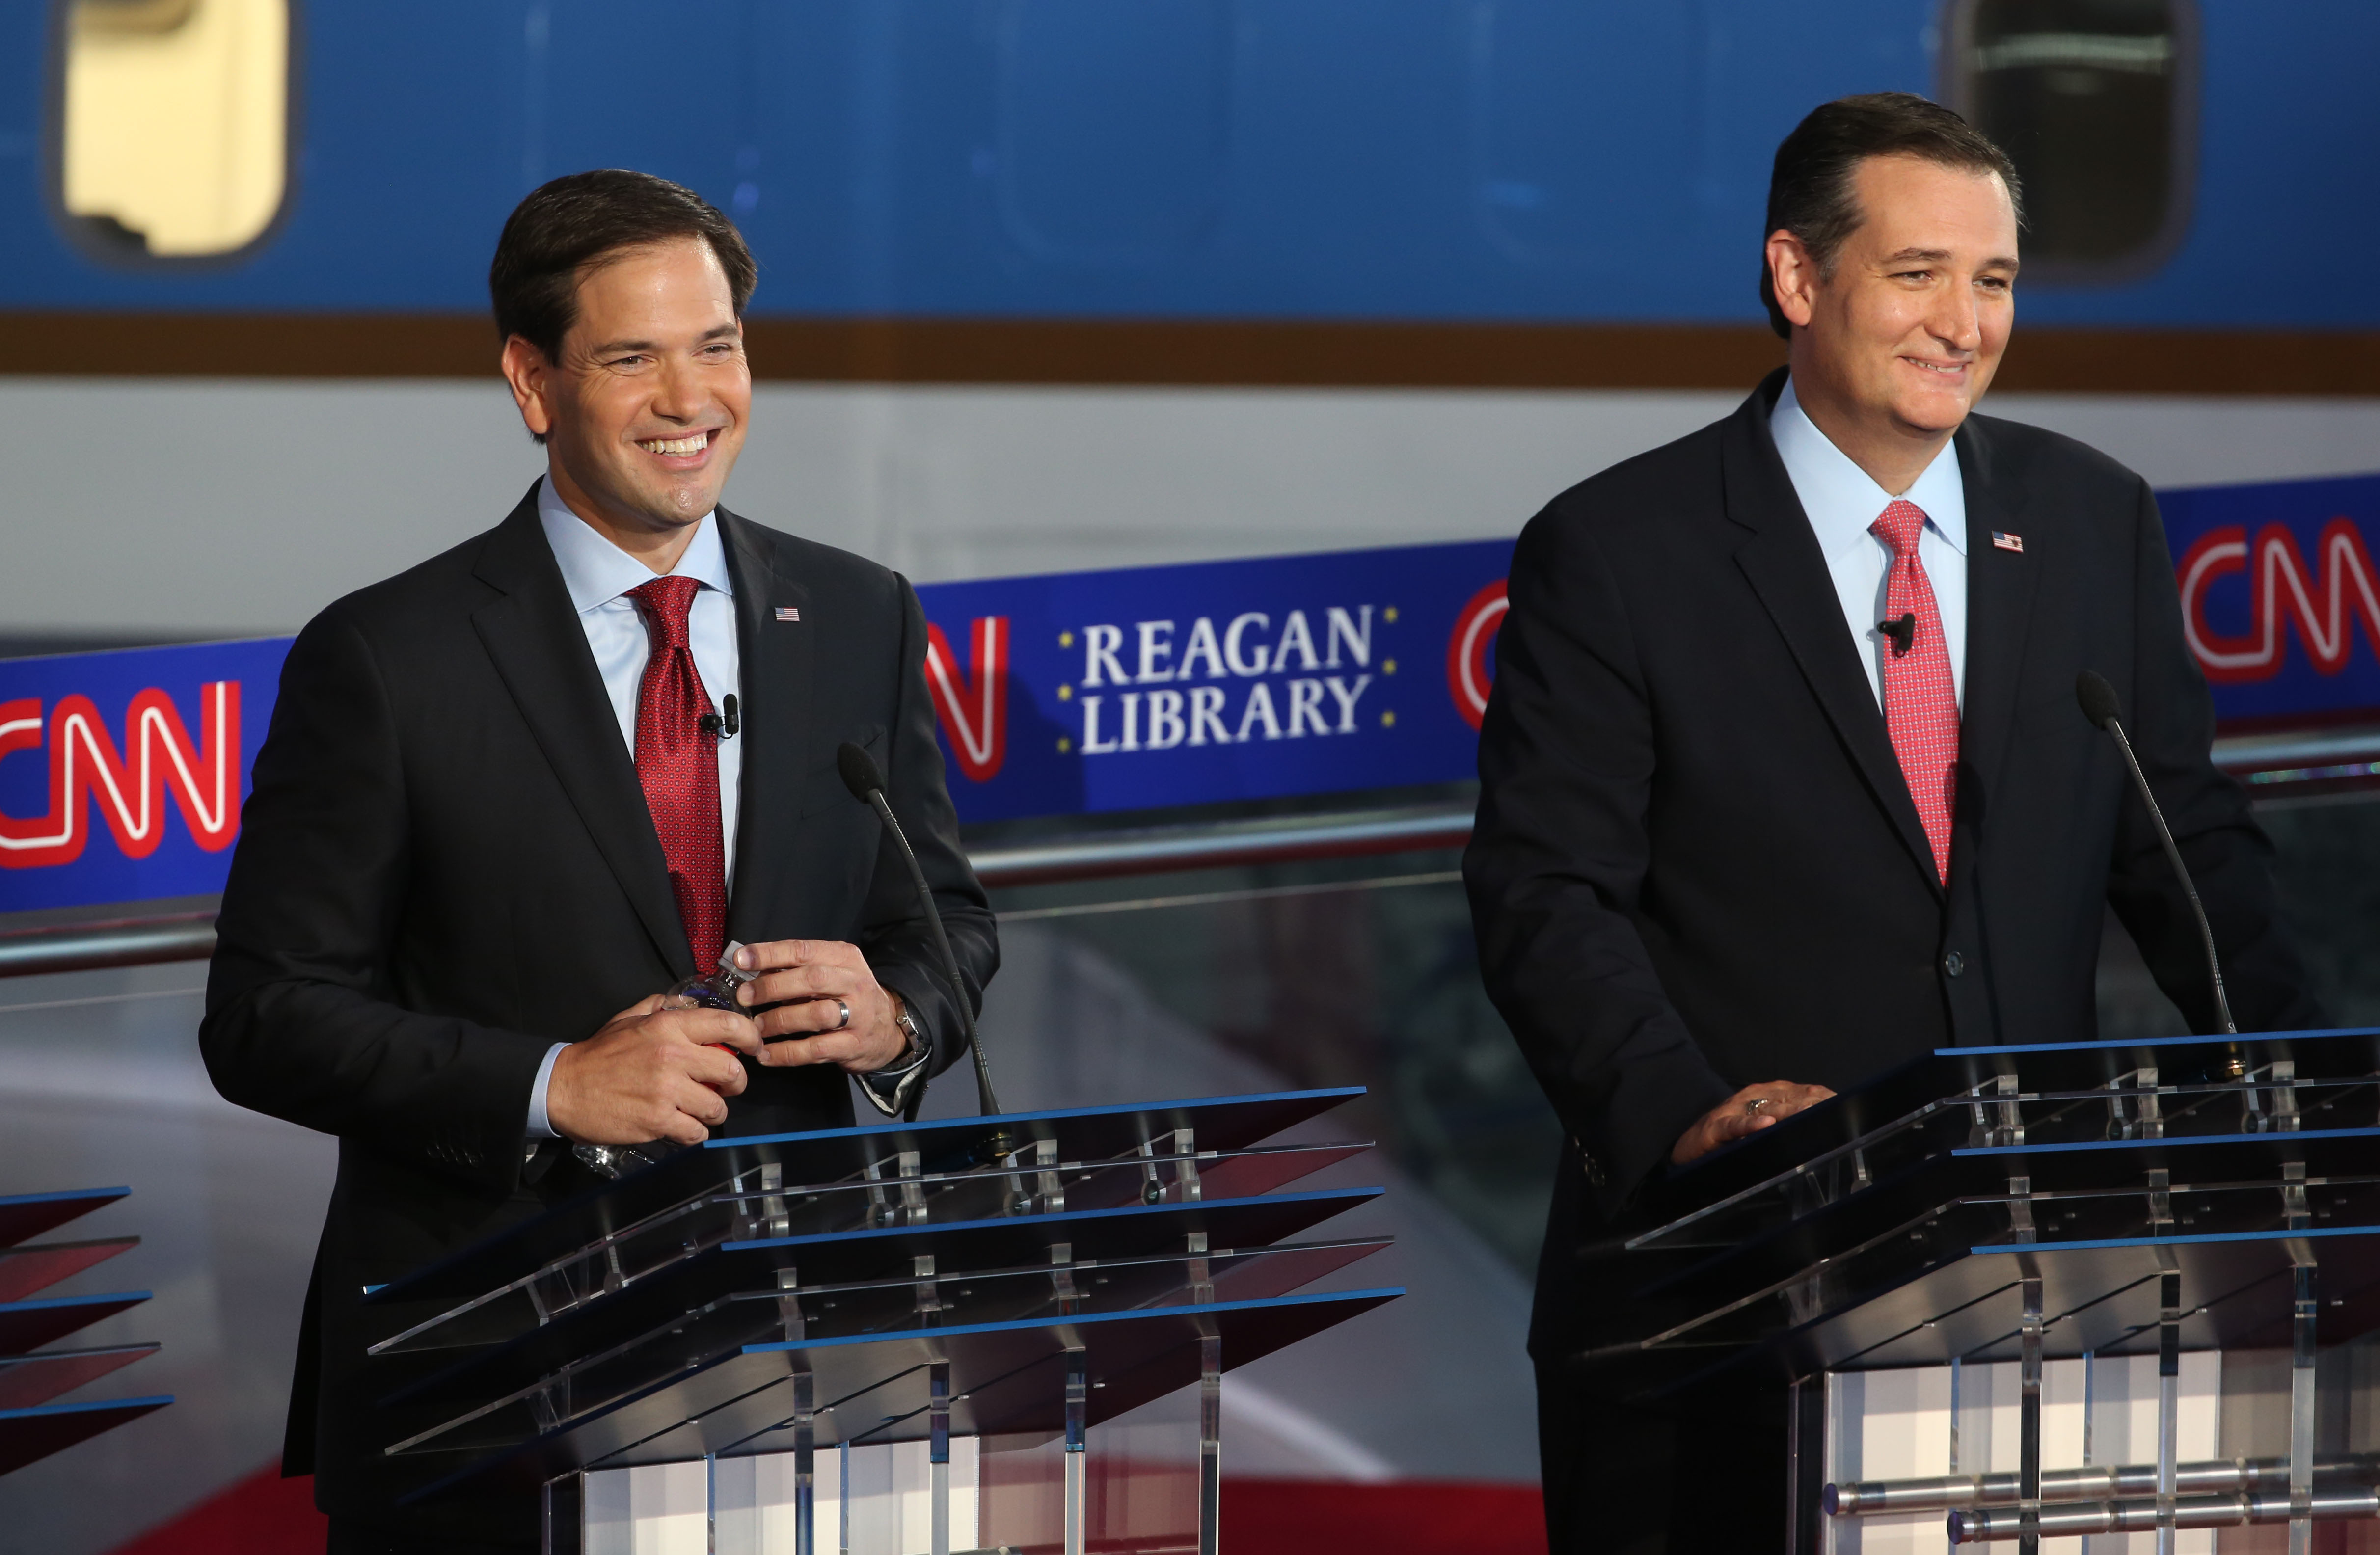 Marco Rubio and Ted Cruz take part in the presidential debates at the Reagan Library in Simi Valley, CA on Sept. 16, 2015.